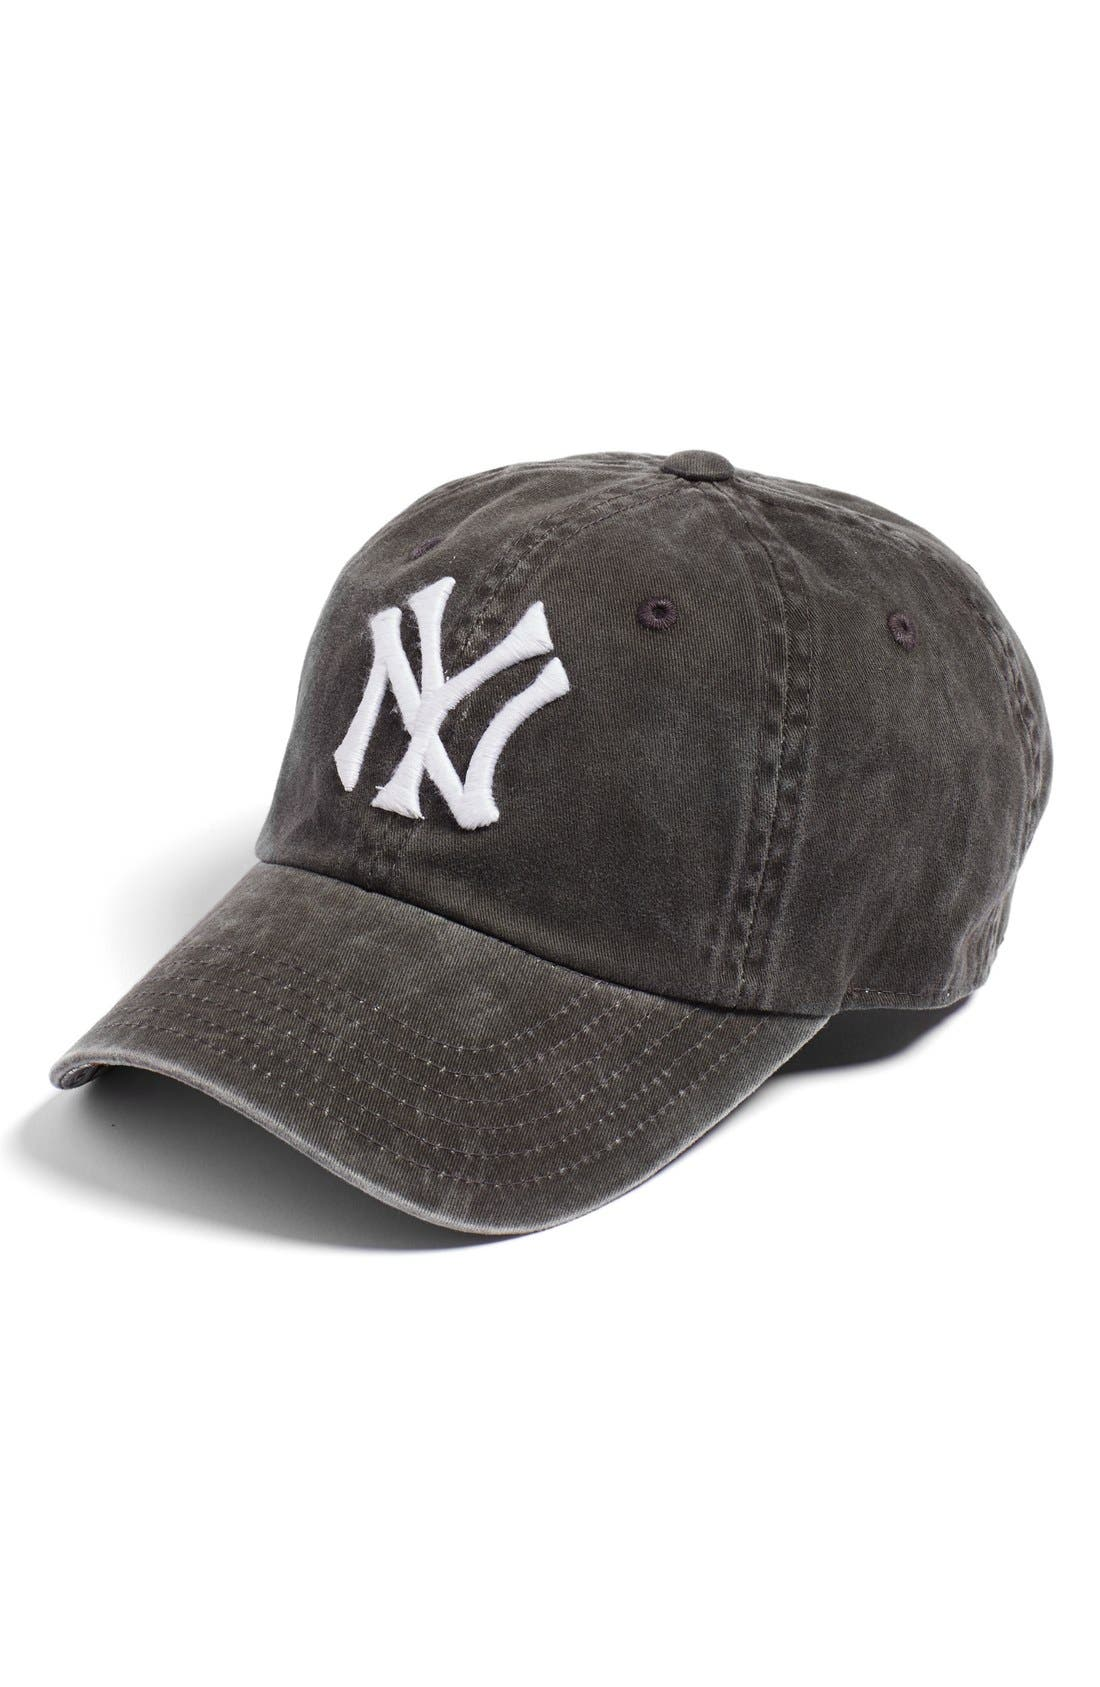 New Raglan New York Yankees Baseball Cap,                             Main thumbnail 1, color,                             001